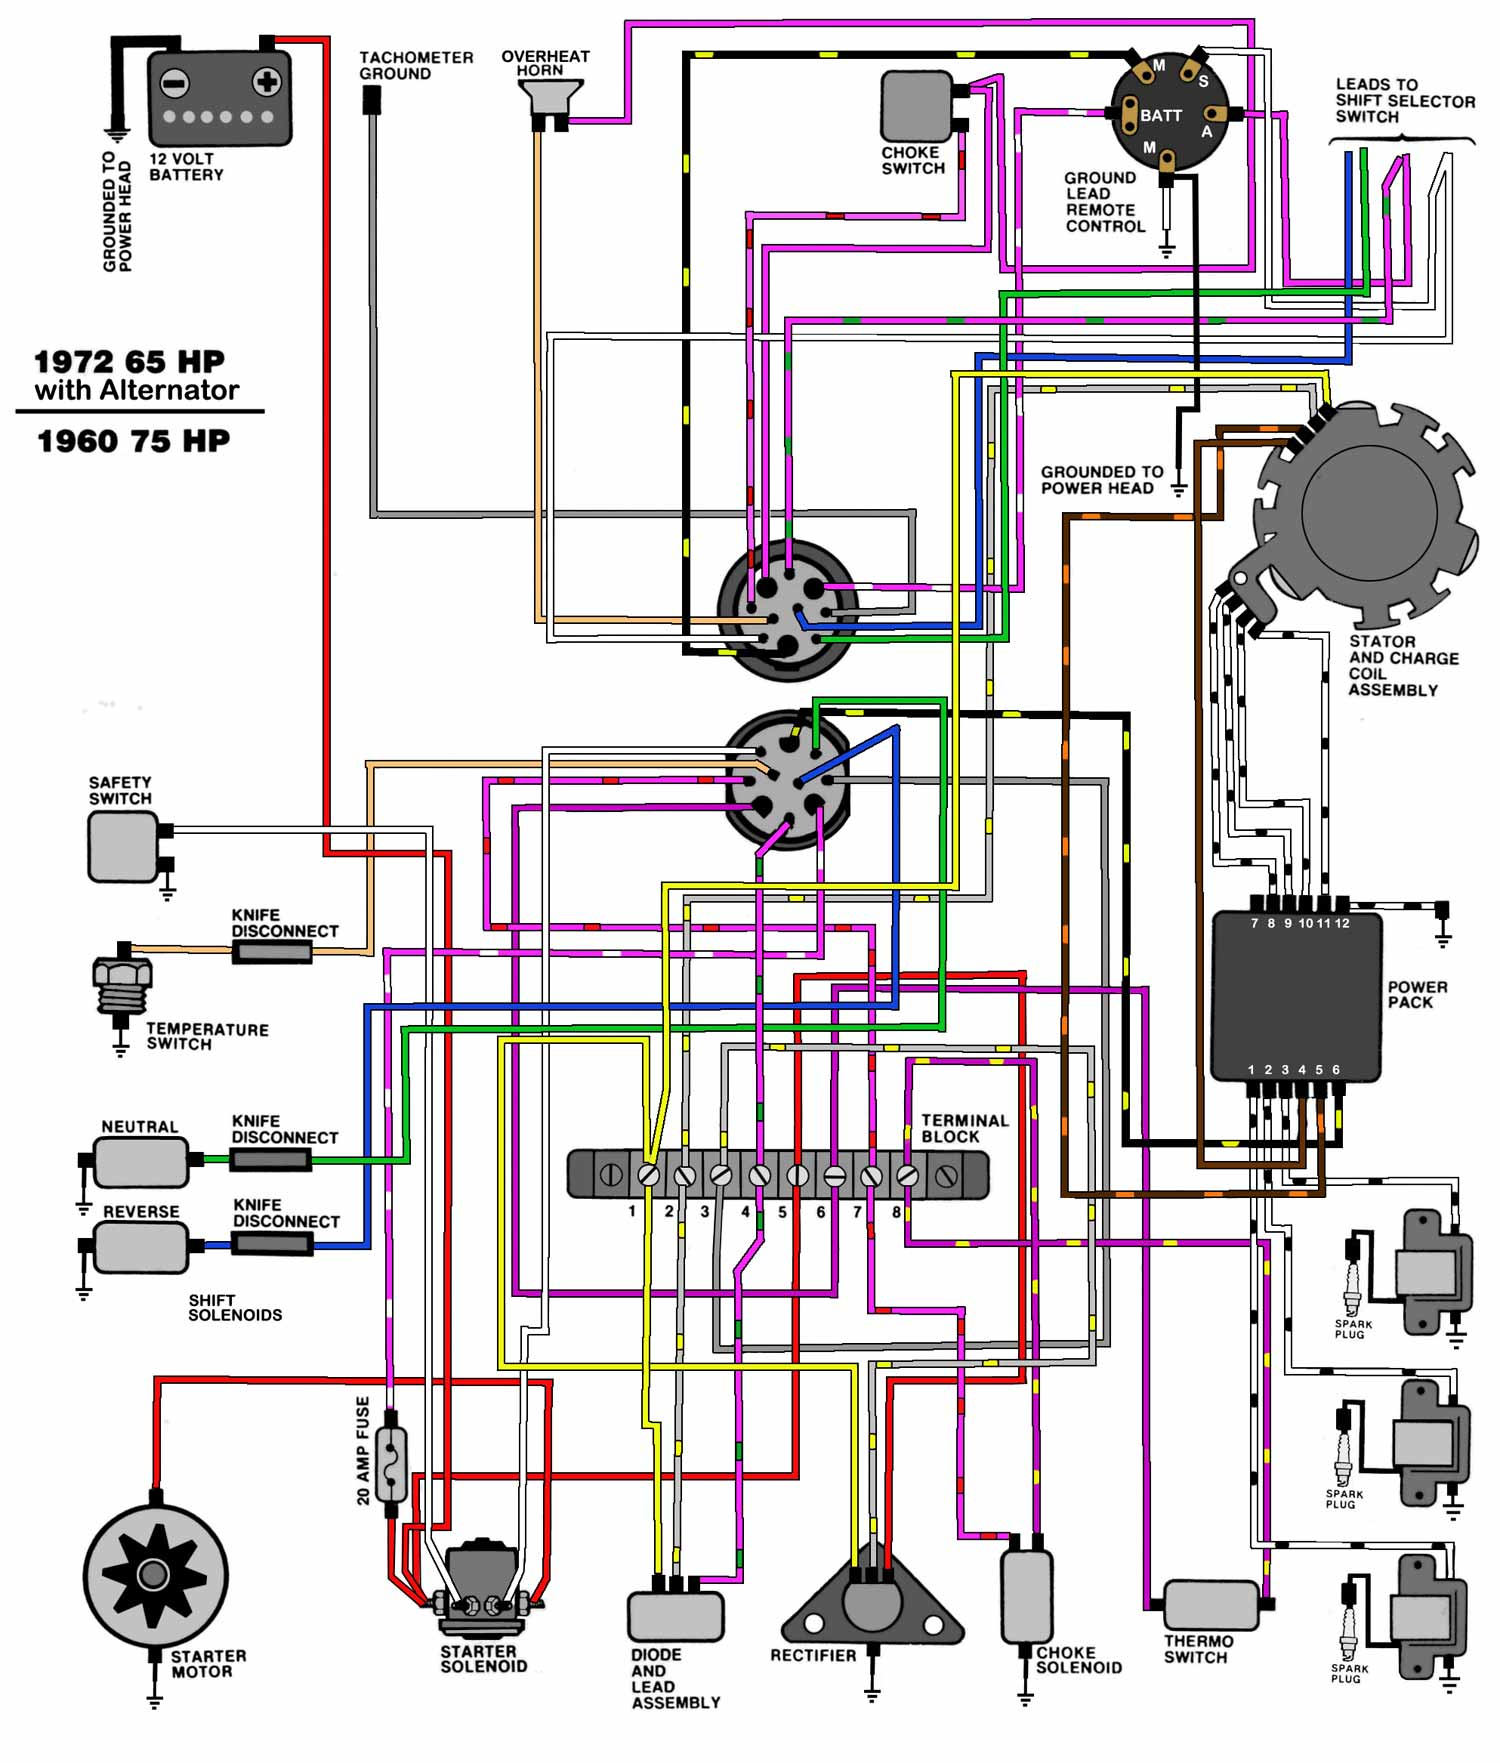 1998 Evinrude Ignition Switch Wiring Diagram - Wiring Diagram